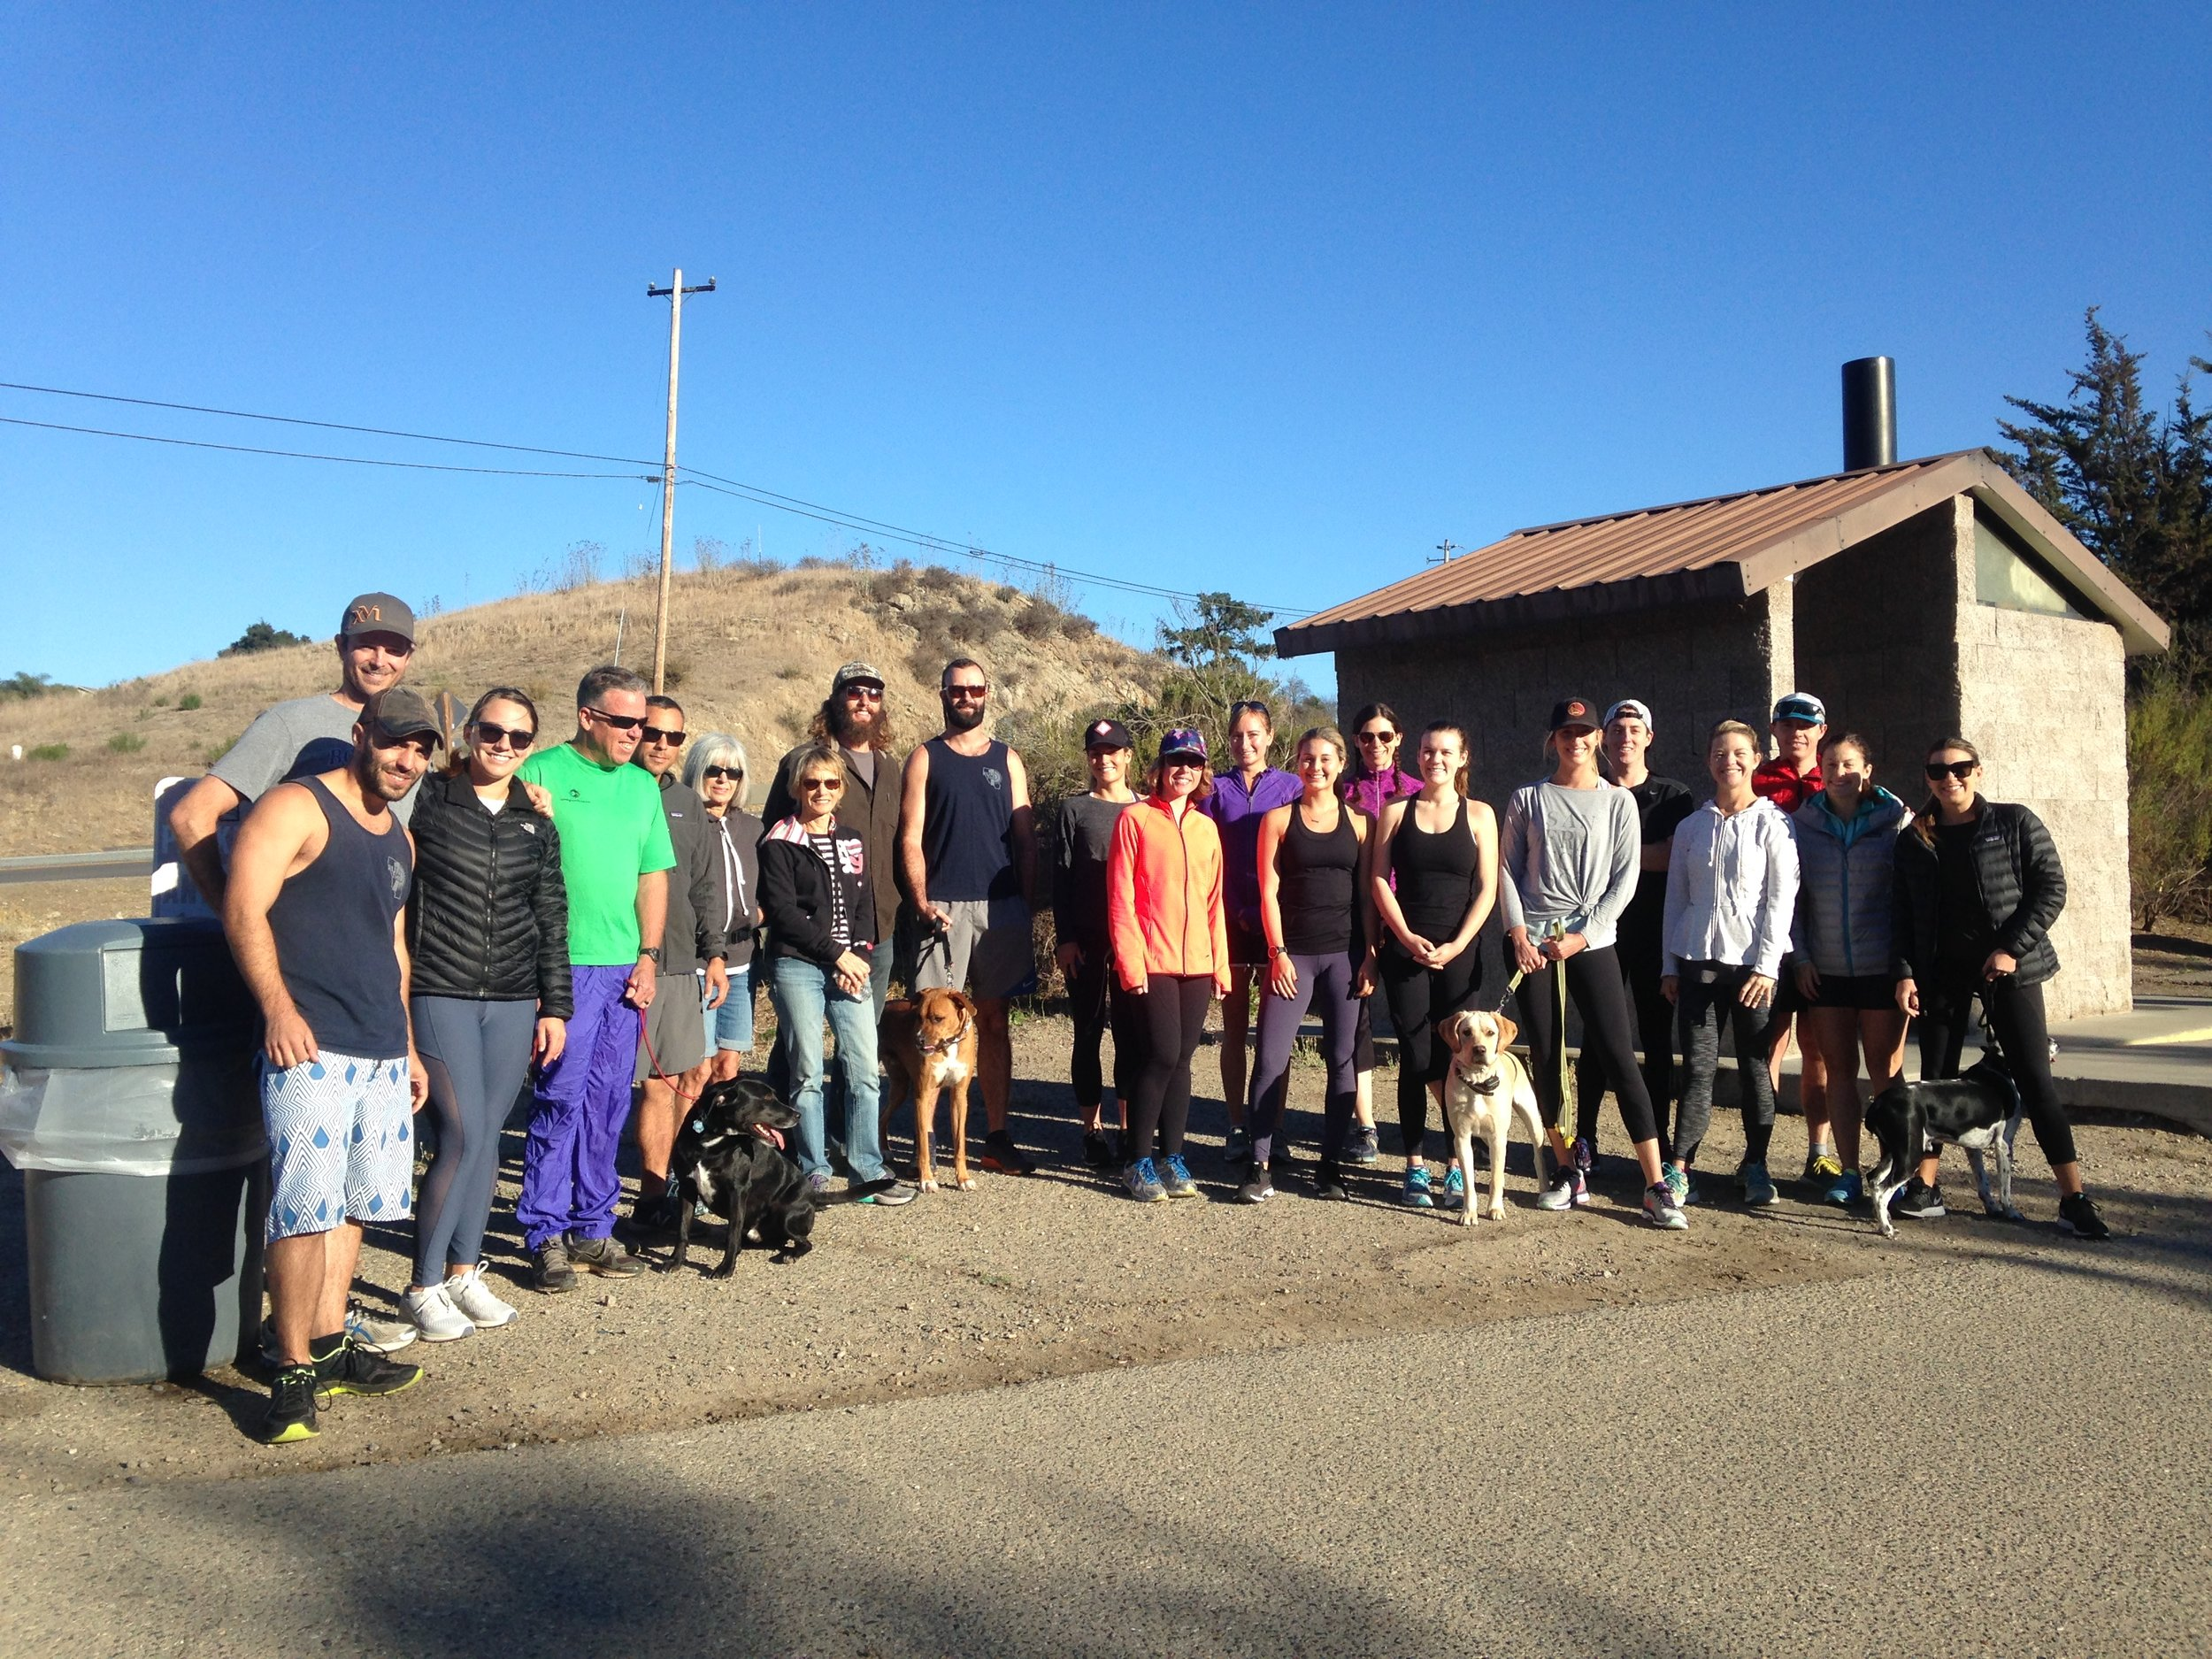 The first official SLO Rafiki Run included many Run the 1 runners but also some new faces too